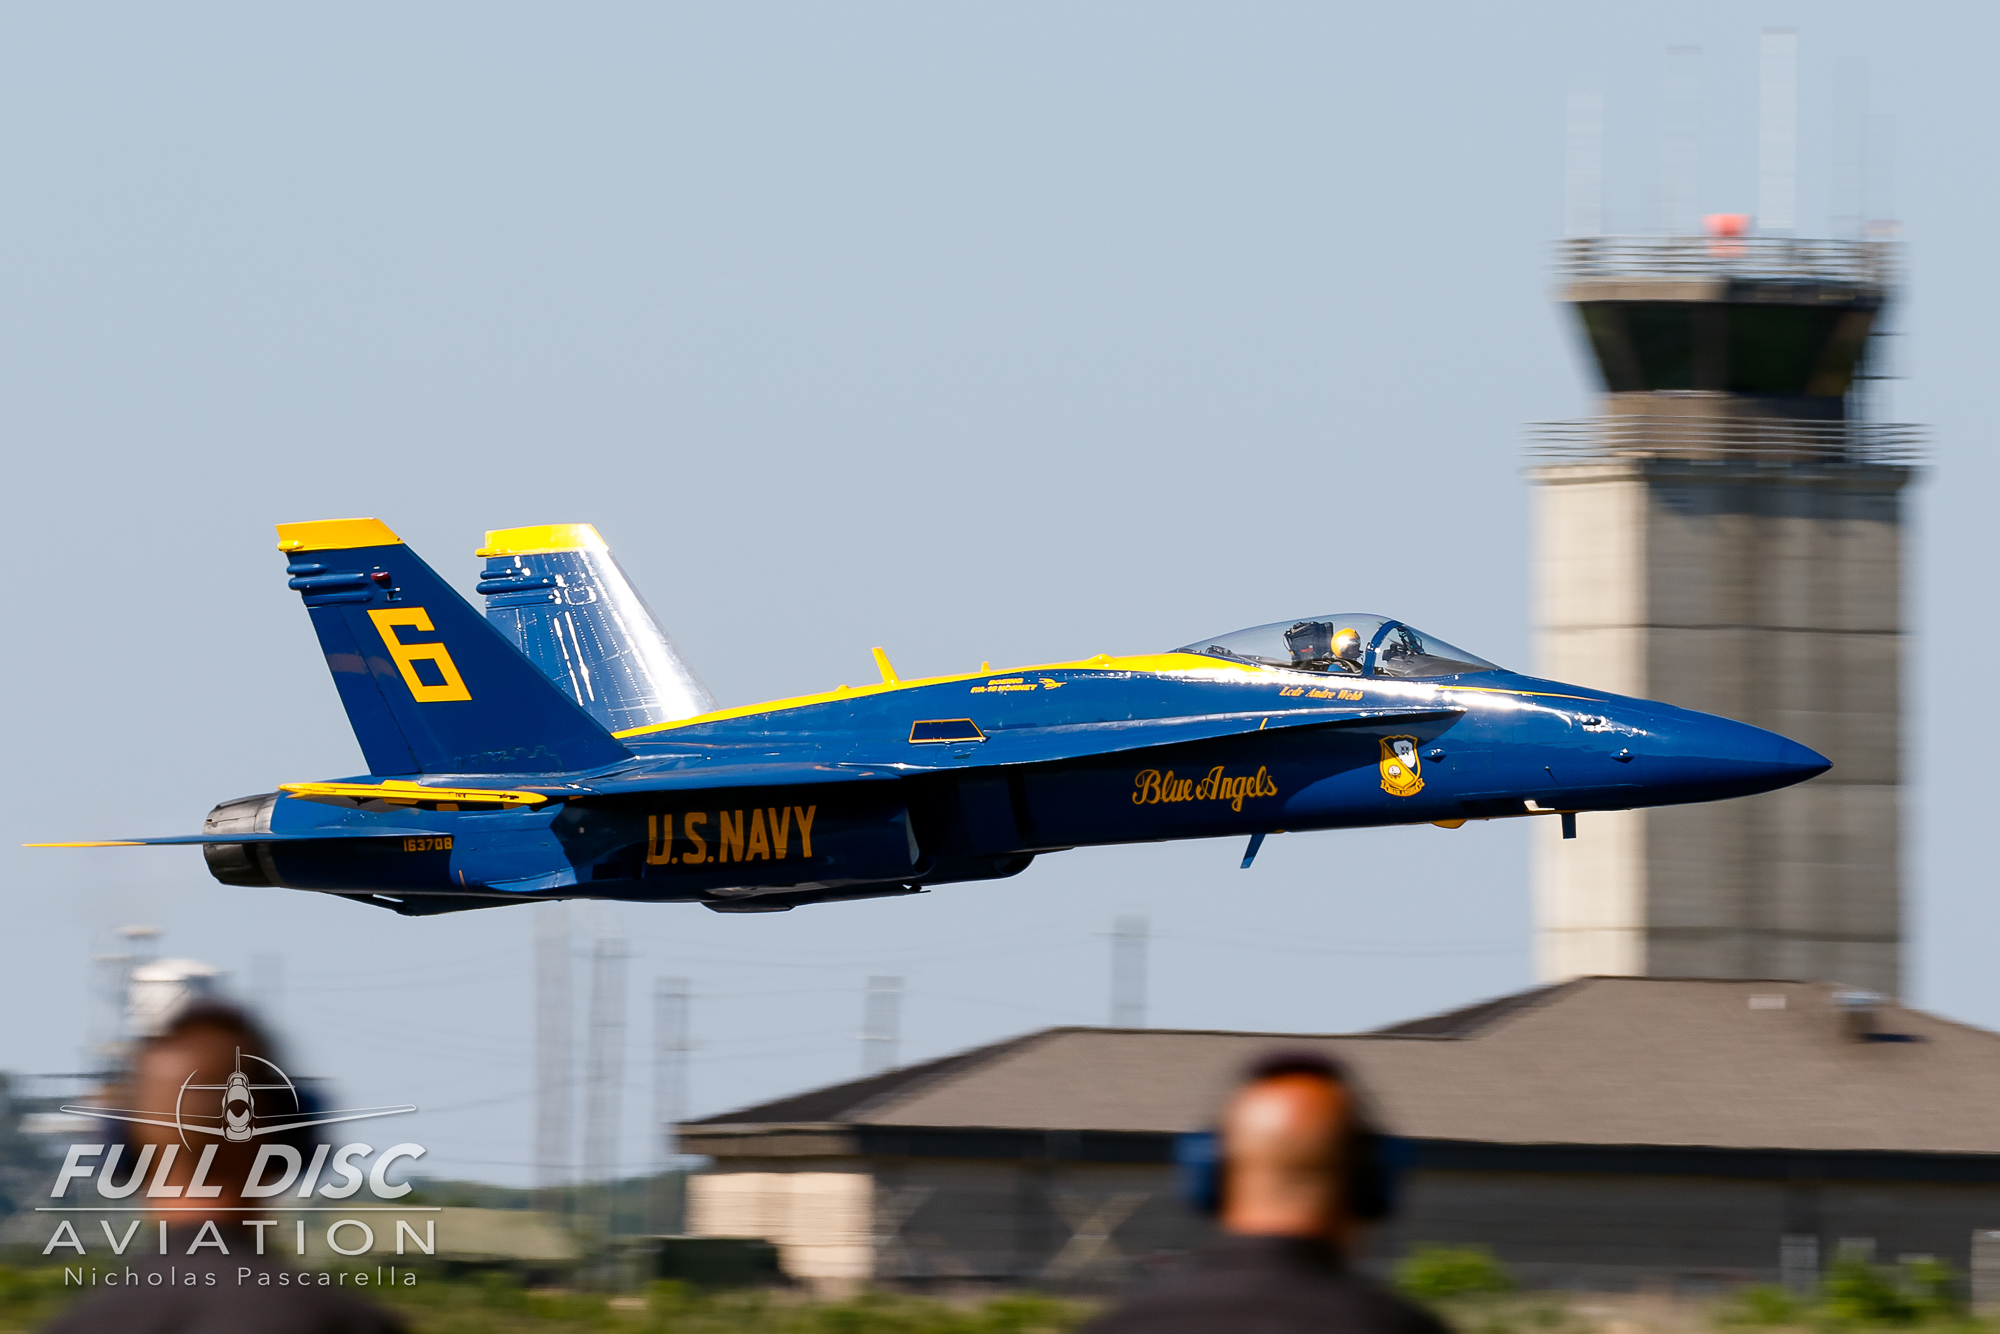 nicholaspascarella_fulldiscavation_aviation_airshow_blueangels_takeoff.jpg